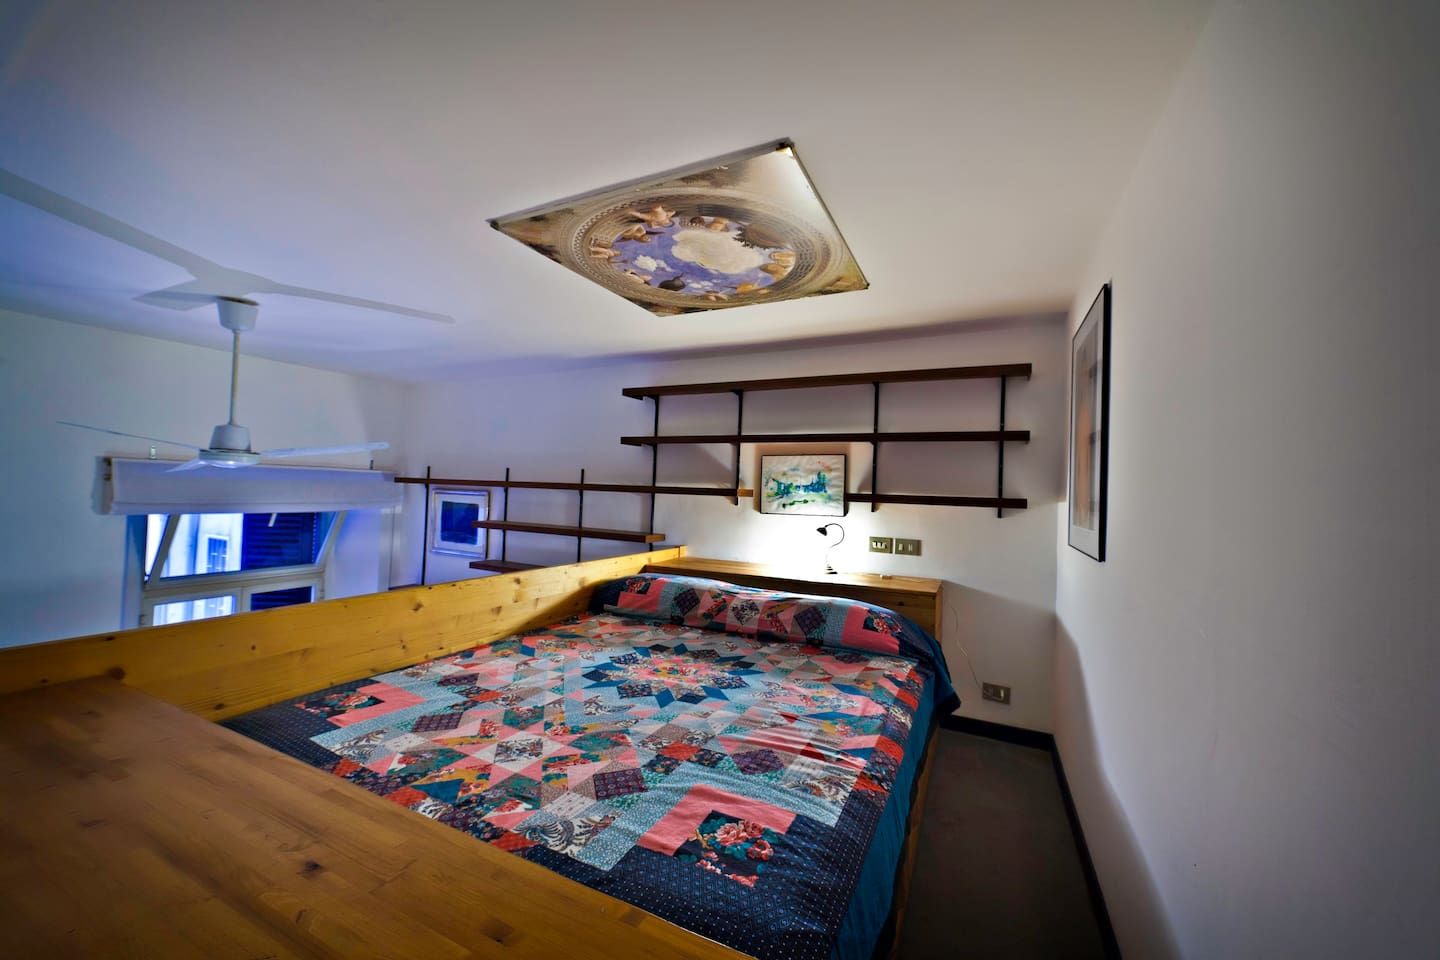 The romantic loft-style bedroom. The ceiling has a height of 194 cm.